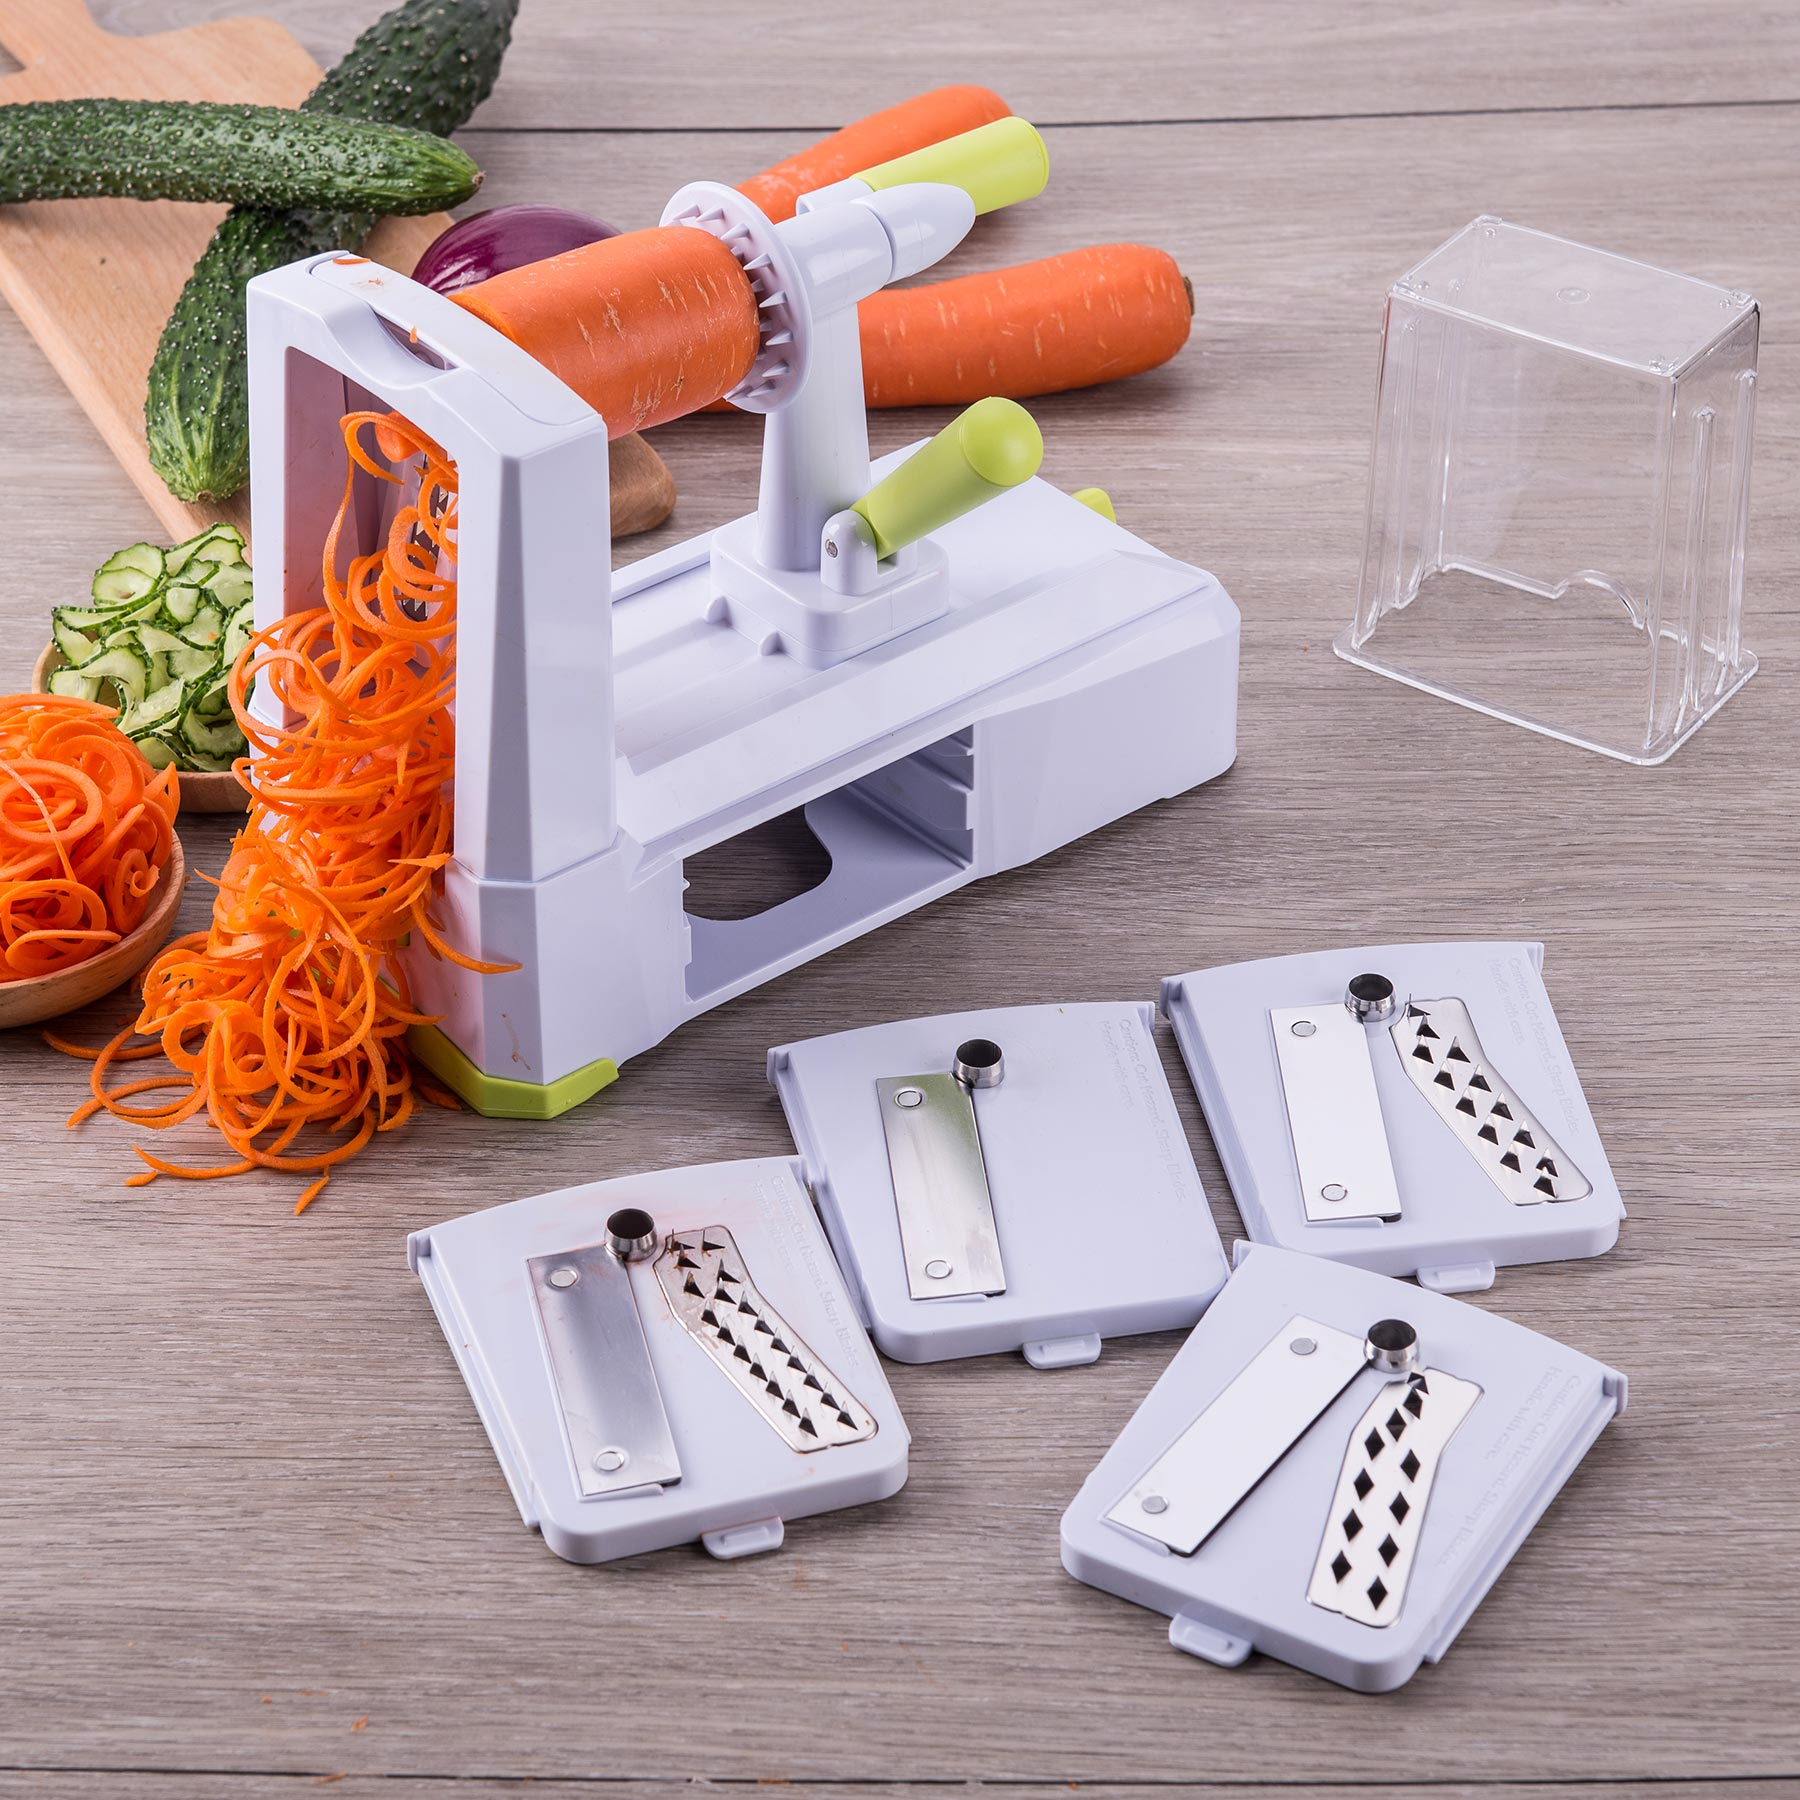 5-blade Spiral Vegetable Slicer Spiralizer Cutter Kitchen